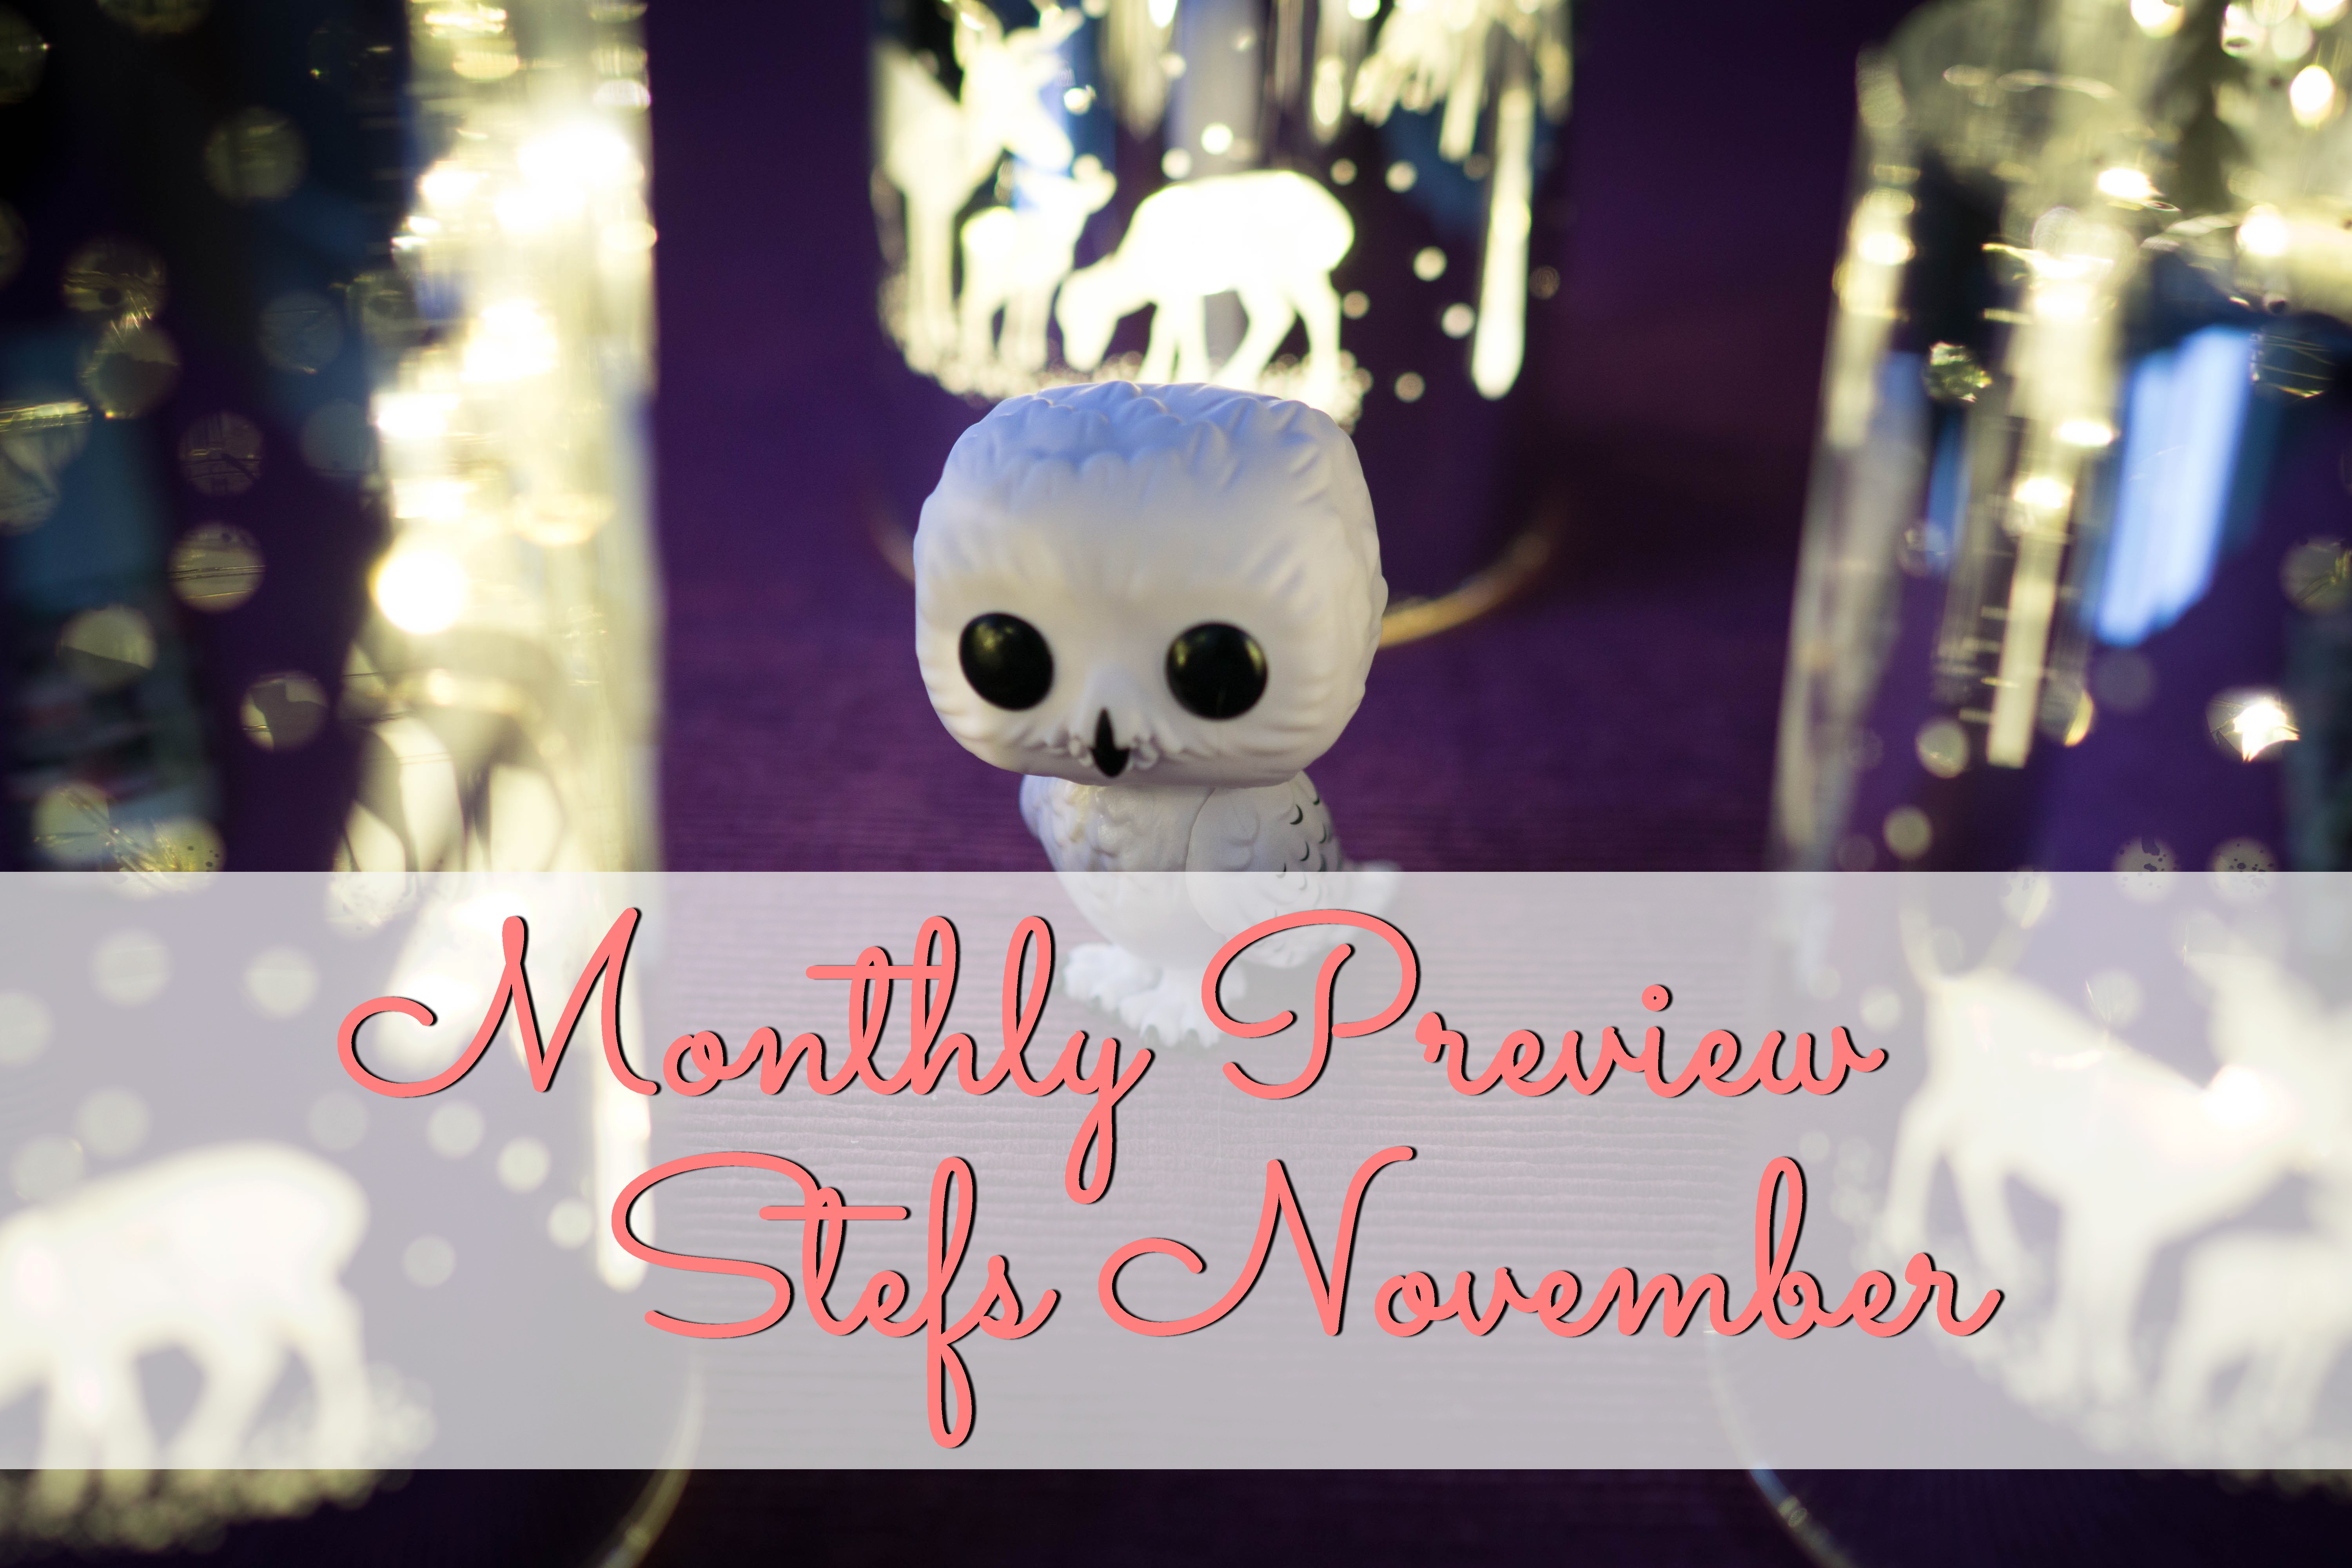 Monthly Preview: Stefs November graphic